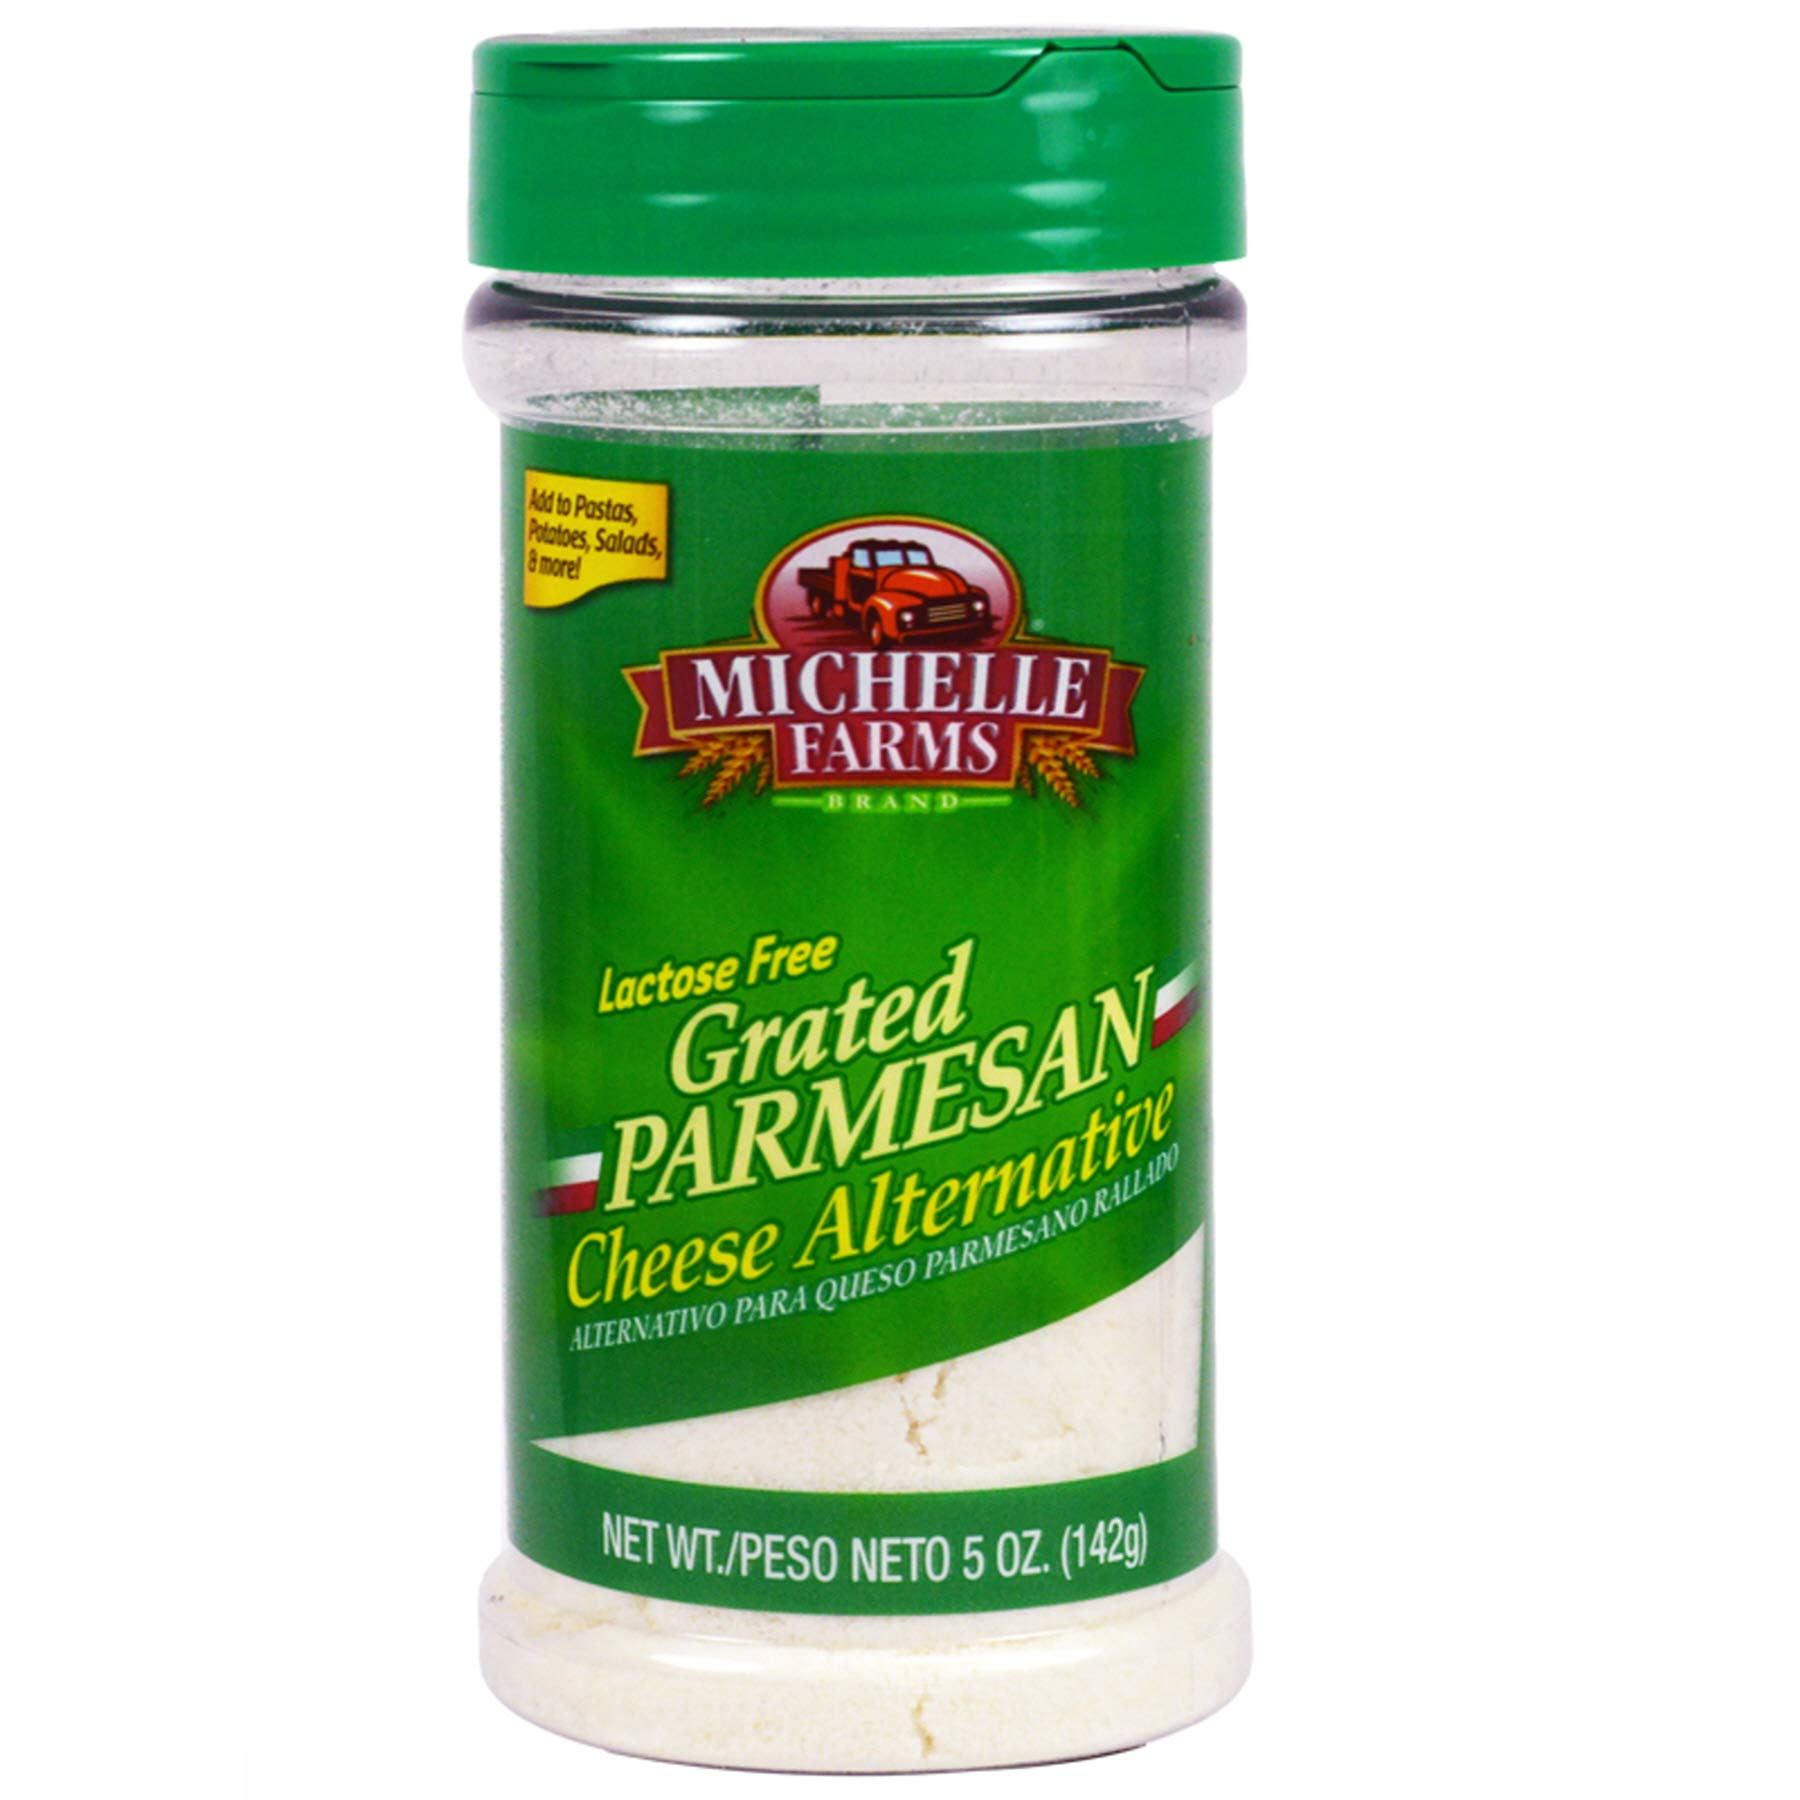 (Pack of 12) Mitchelle Farms Parmesan Cheese Grated, 5oz